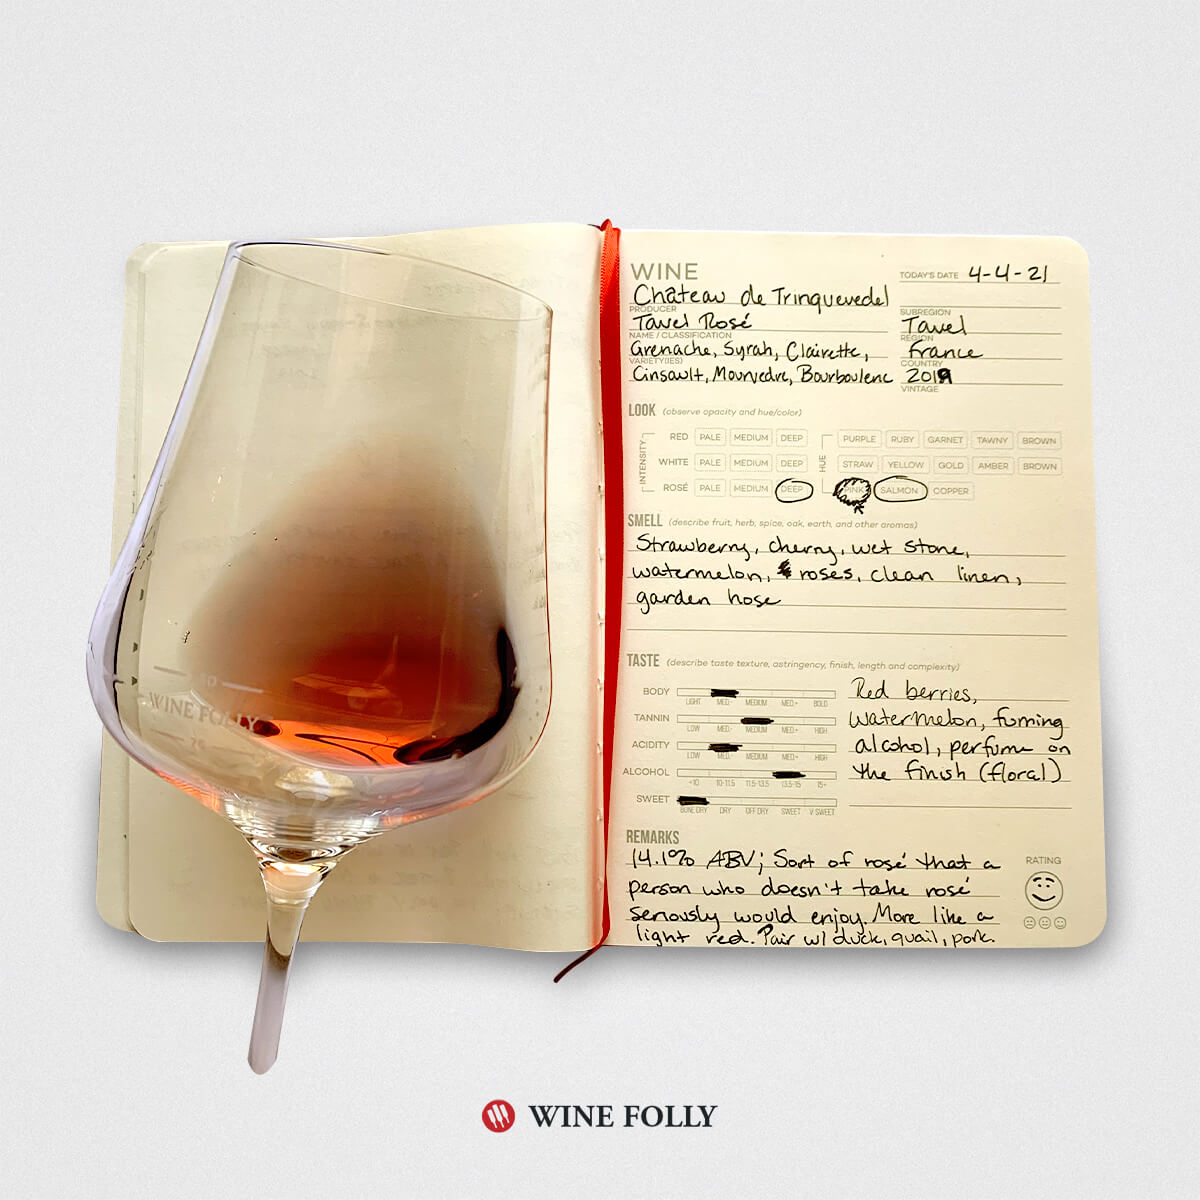 french-tavel-rose-tasting-notes-wine-journal